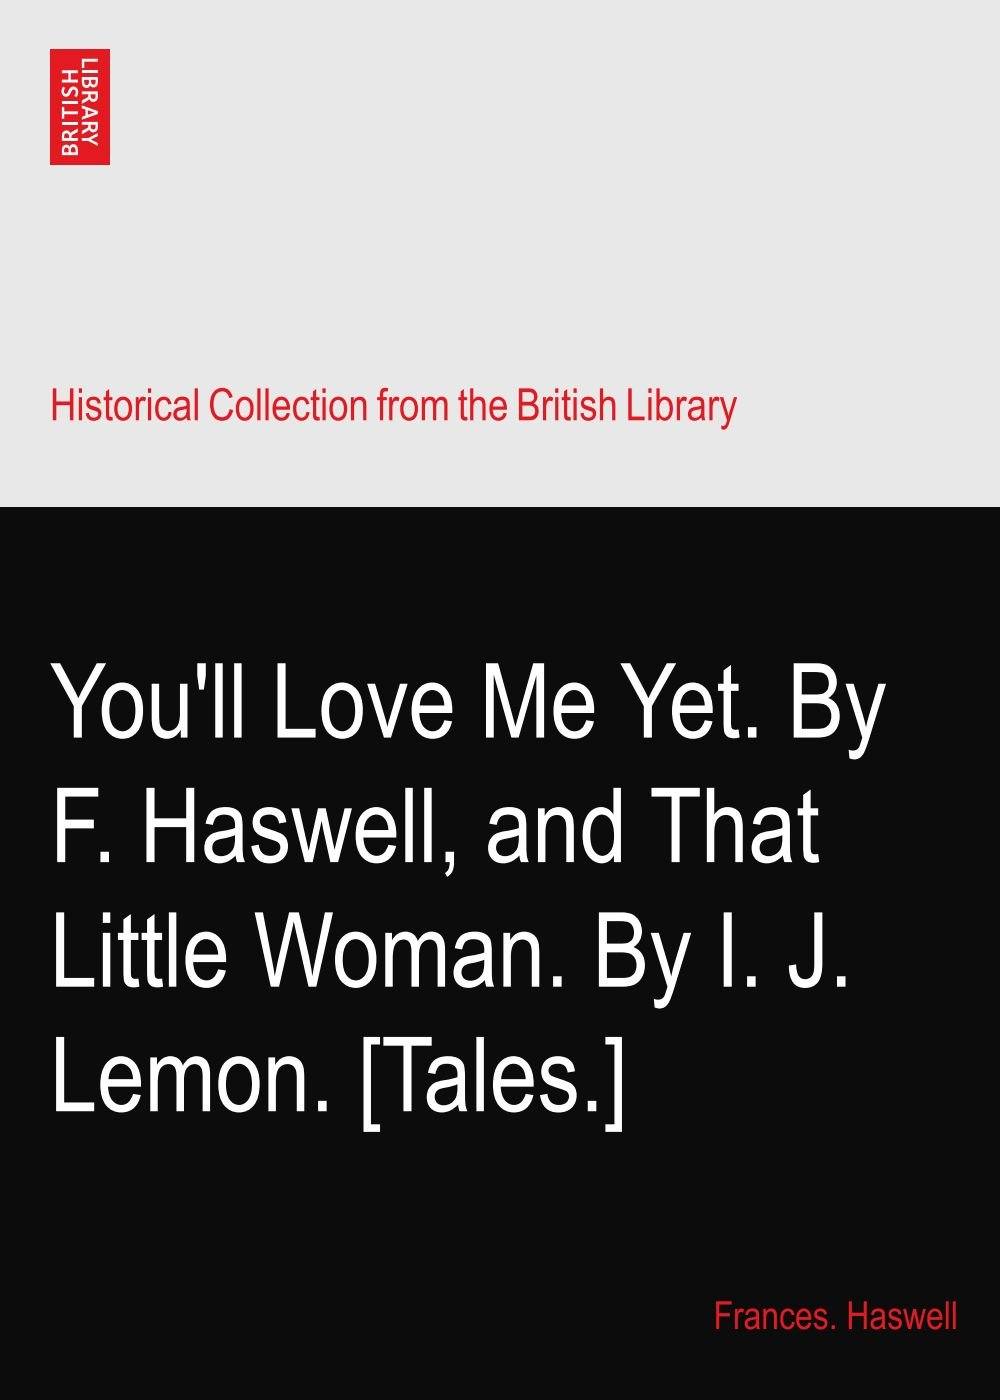 You'll Love Me Yet. By F. Haswell, and That Little Woman. By I. J. Lemon. [Tales.] PDF